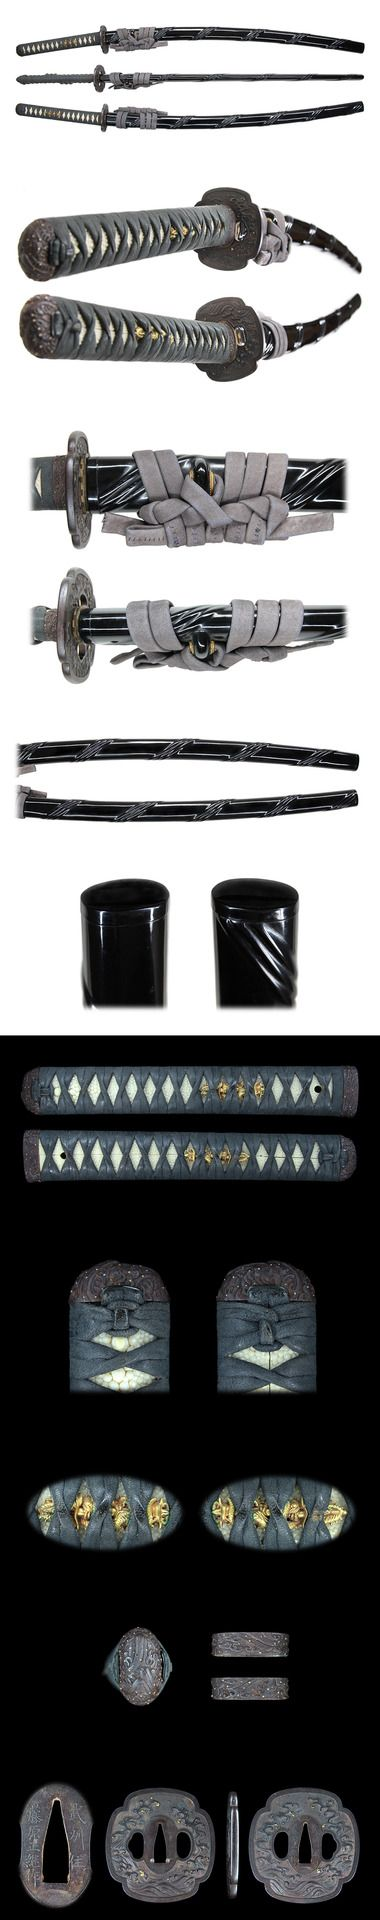 Japanese sword, Katana, is a beautiful structure of art that is expressed through the craftsmen and the blade.